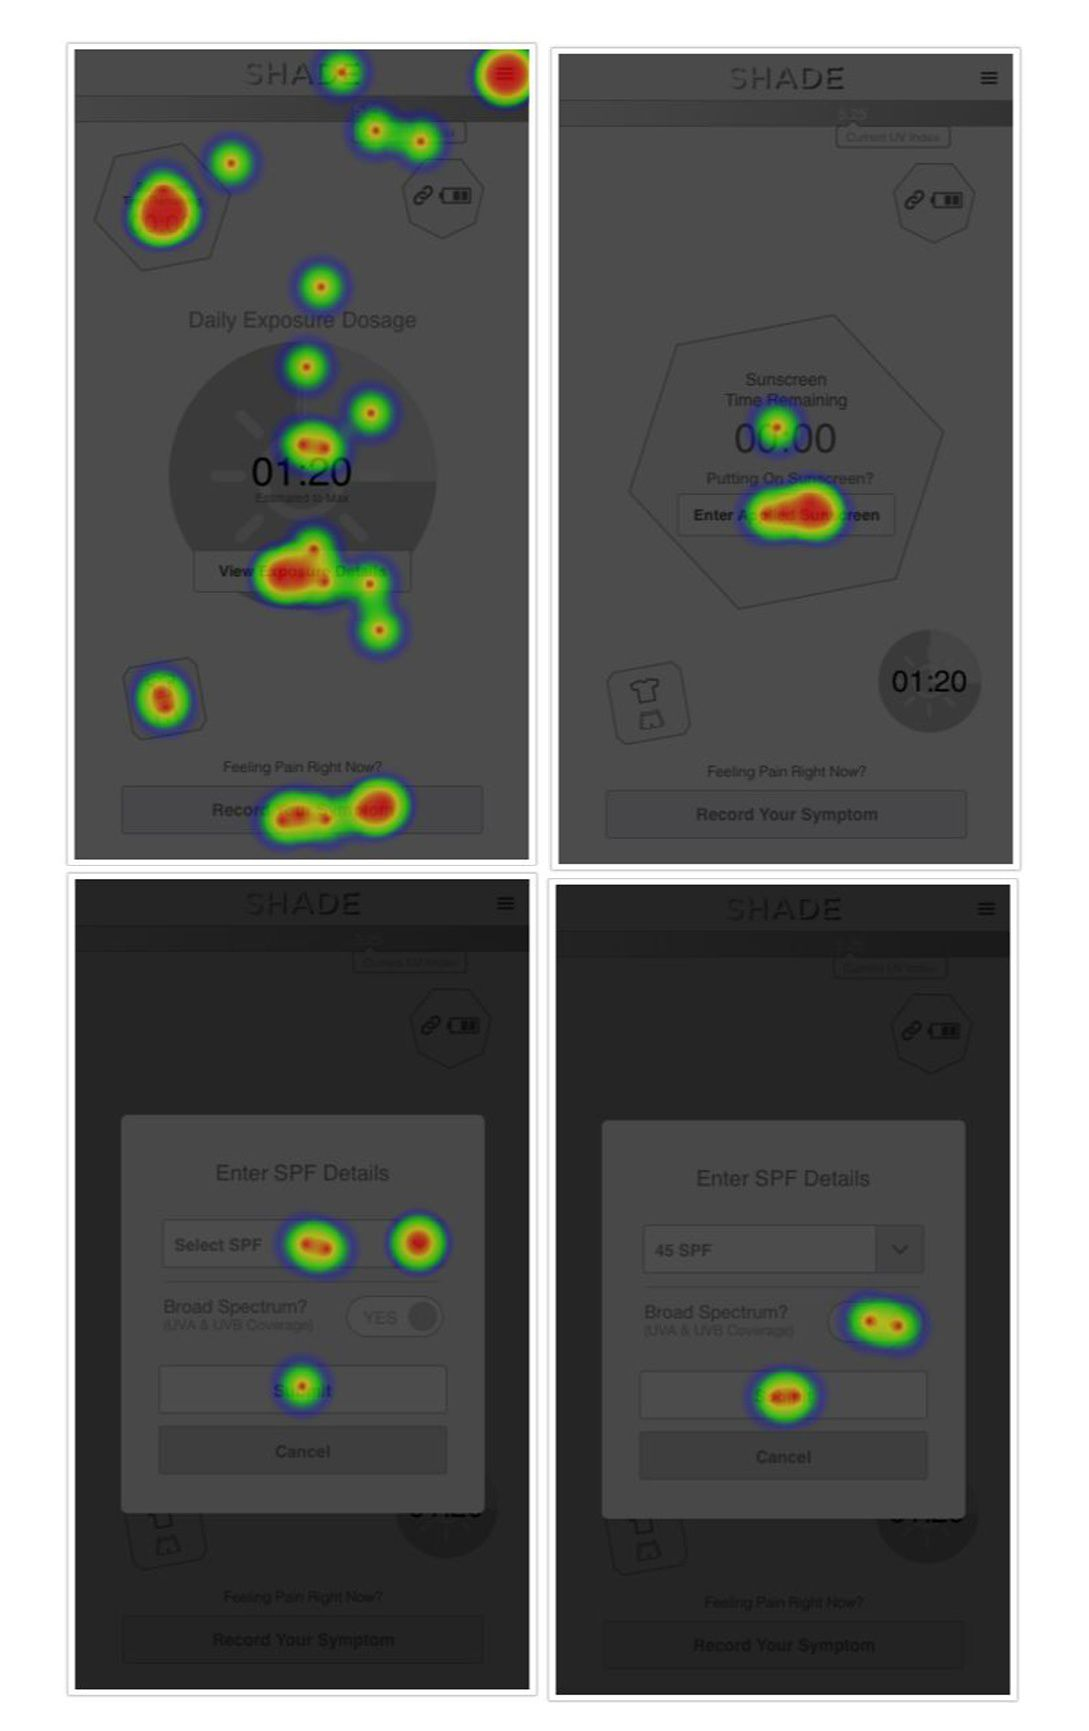 The heat maps show results from each test.